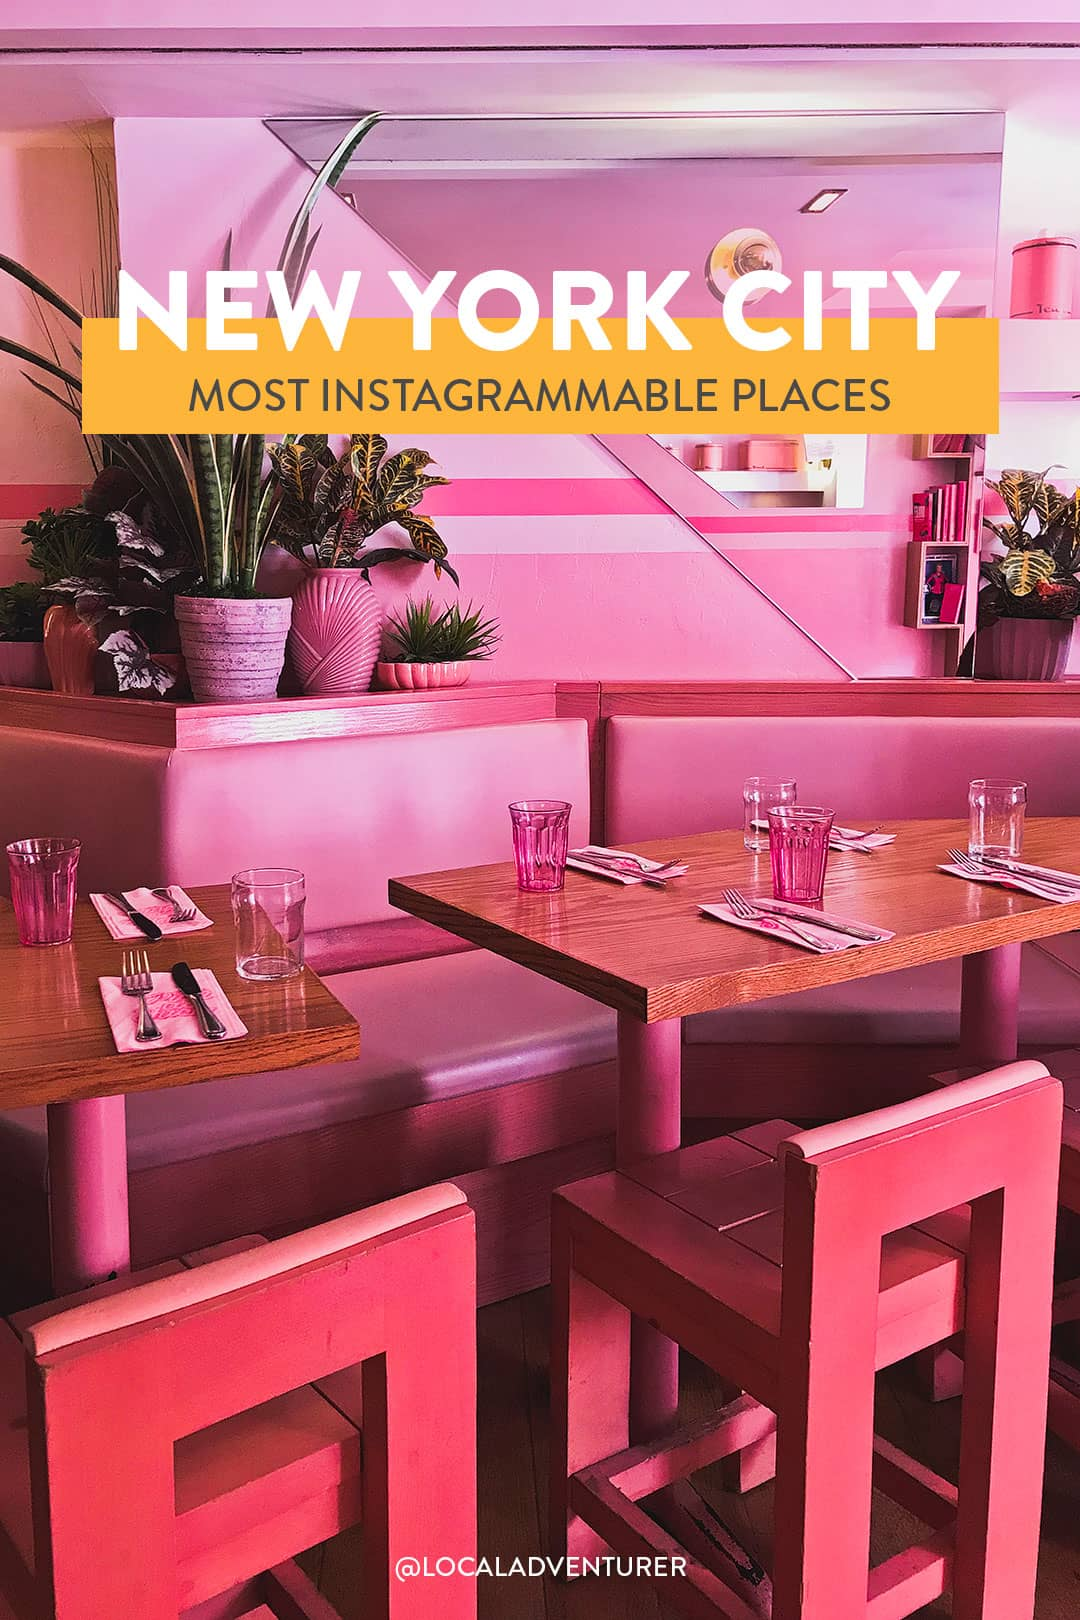 Most Instagrammable Places in NYC